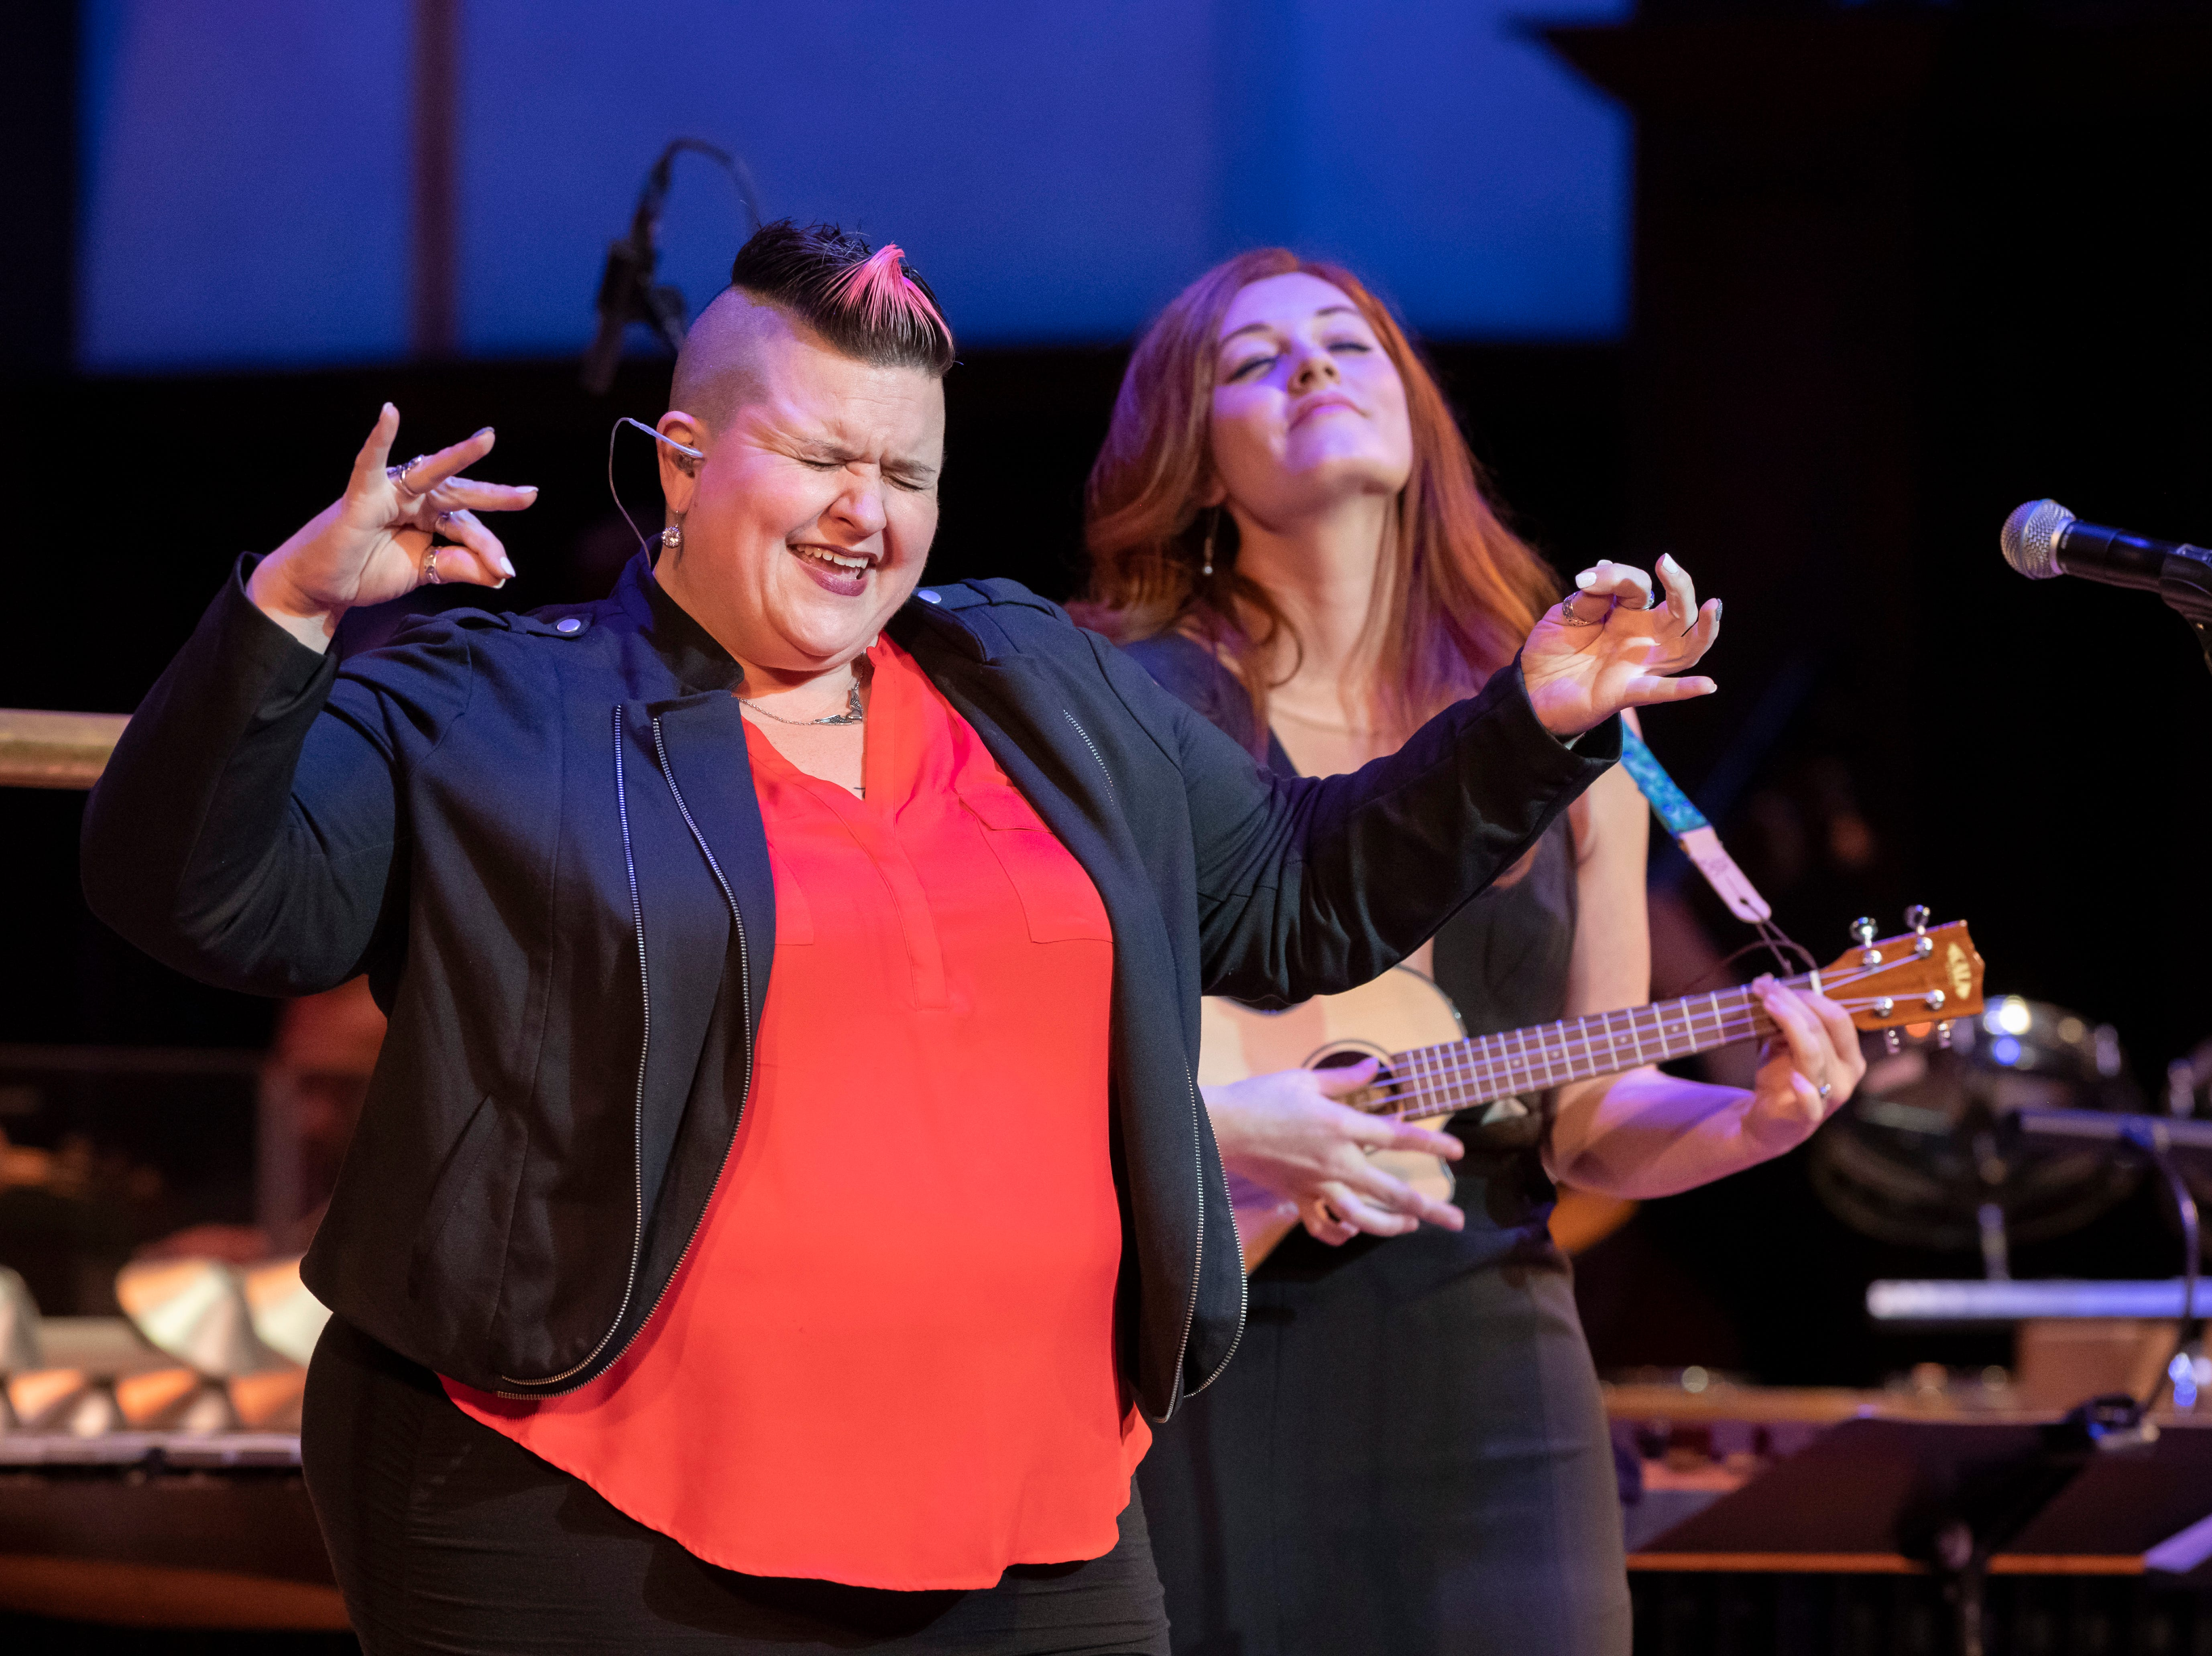 ASL performer Amber Galloway Gallego, left, and musician Mandy Harvey perform during the Deaf and Loud Symphonic Experience at the Detroit Symphony Orchestra.